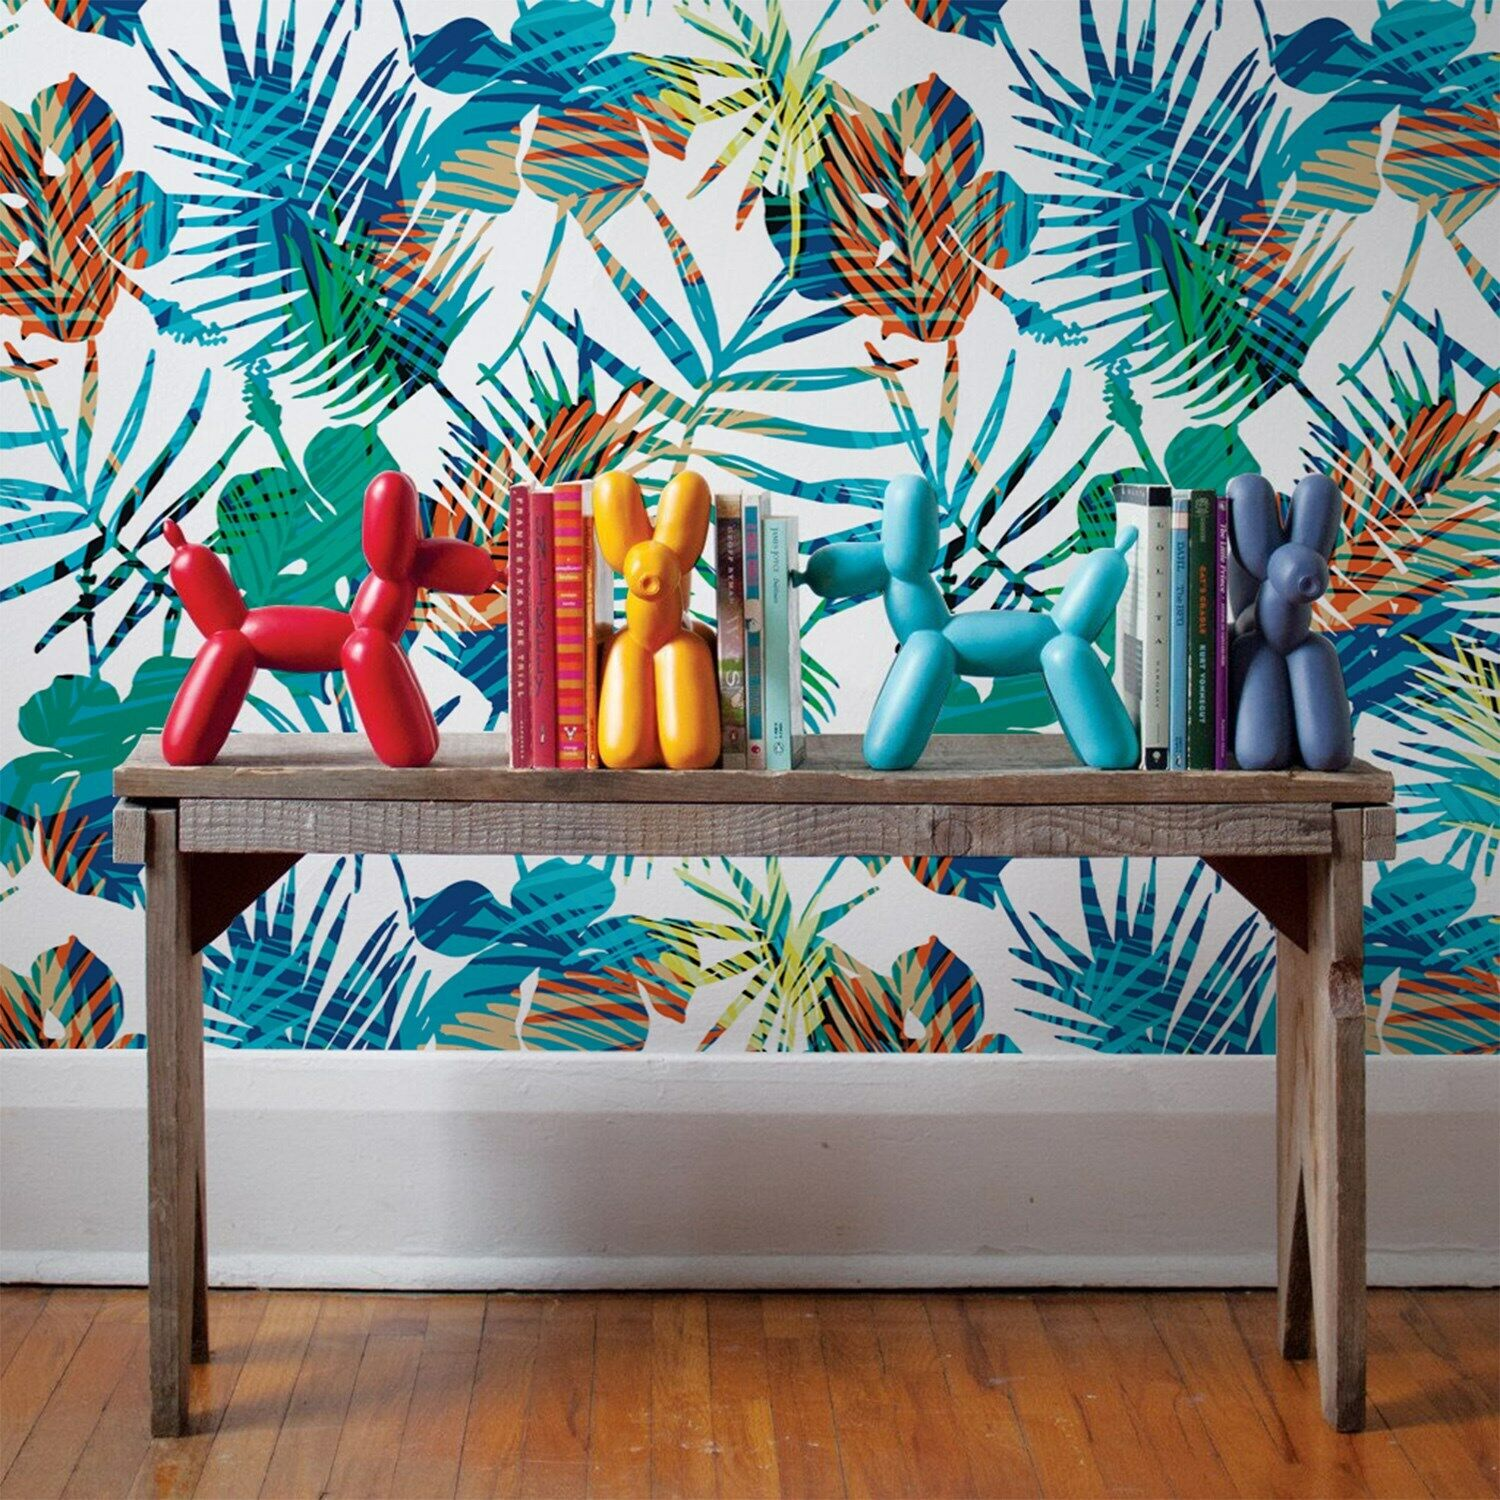 Farbeful flowers Non-Woven wallpaper palm wall Modern Home Mural Traditional